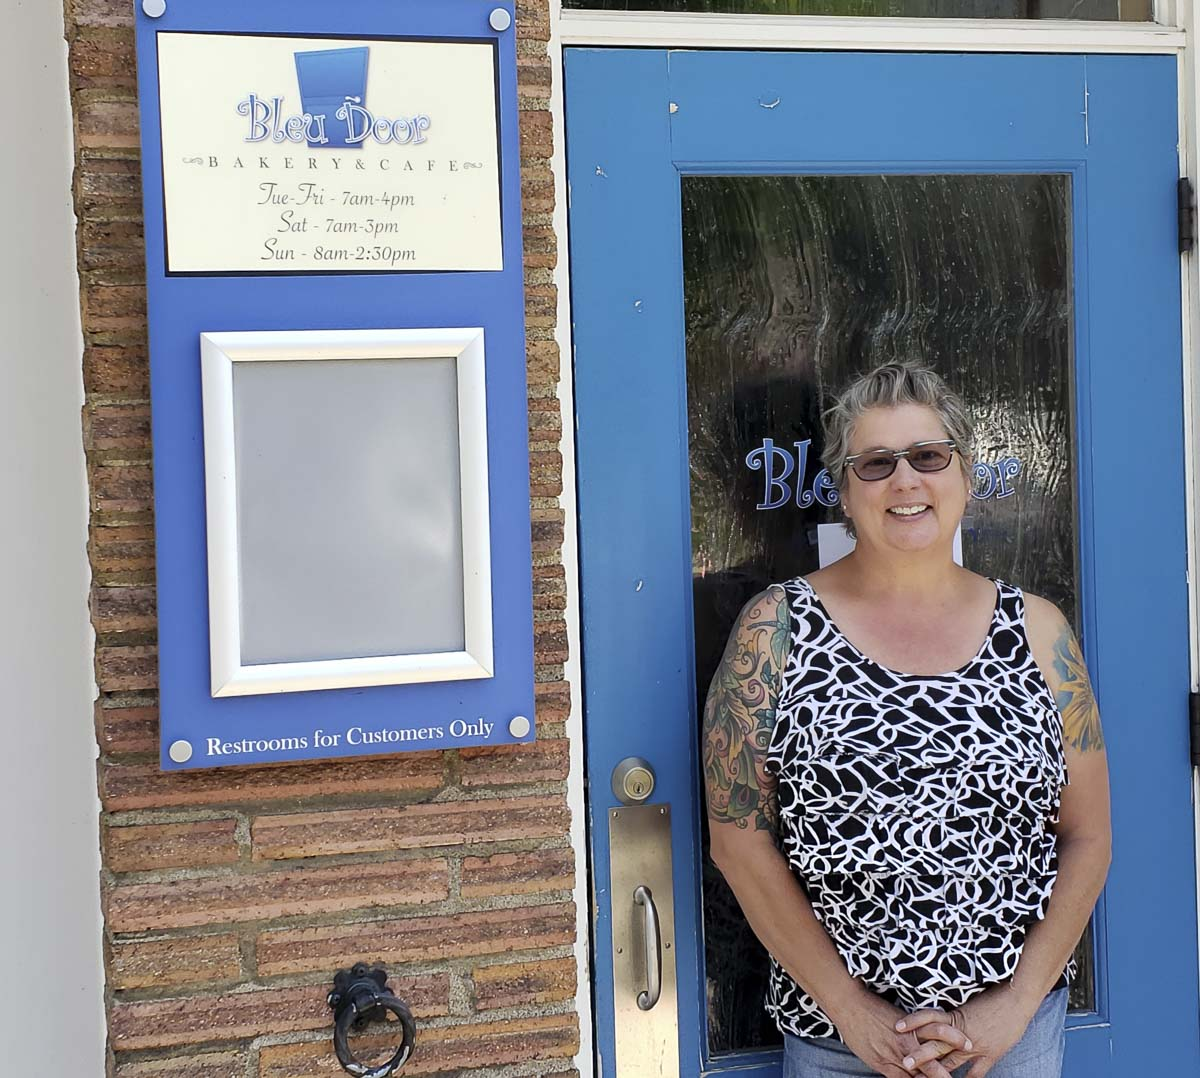 Bonnie Brasure will reopen the express side of Bleu Door Bakery on June 9. She has been feeding those in need in our community during the pandemic. Photo by Paul Valencia